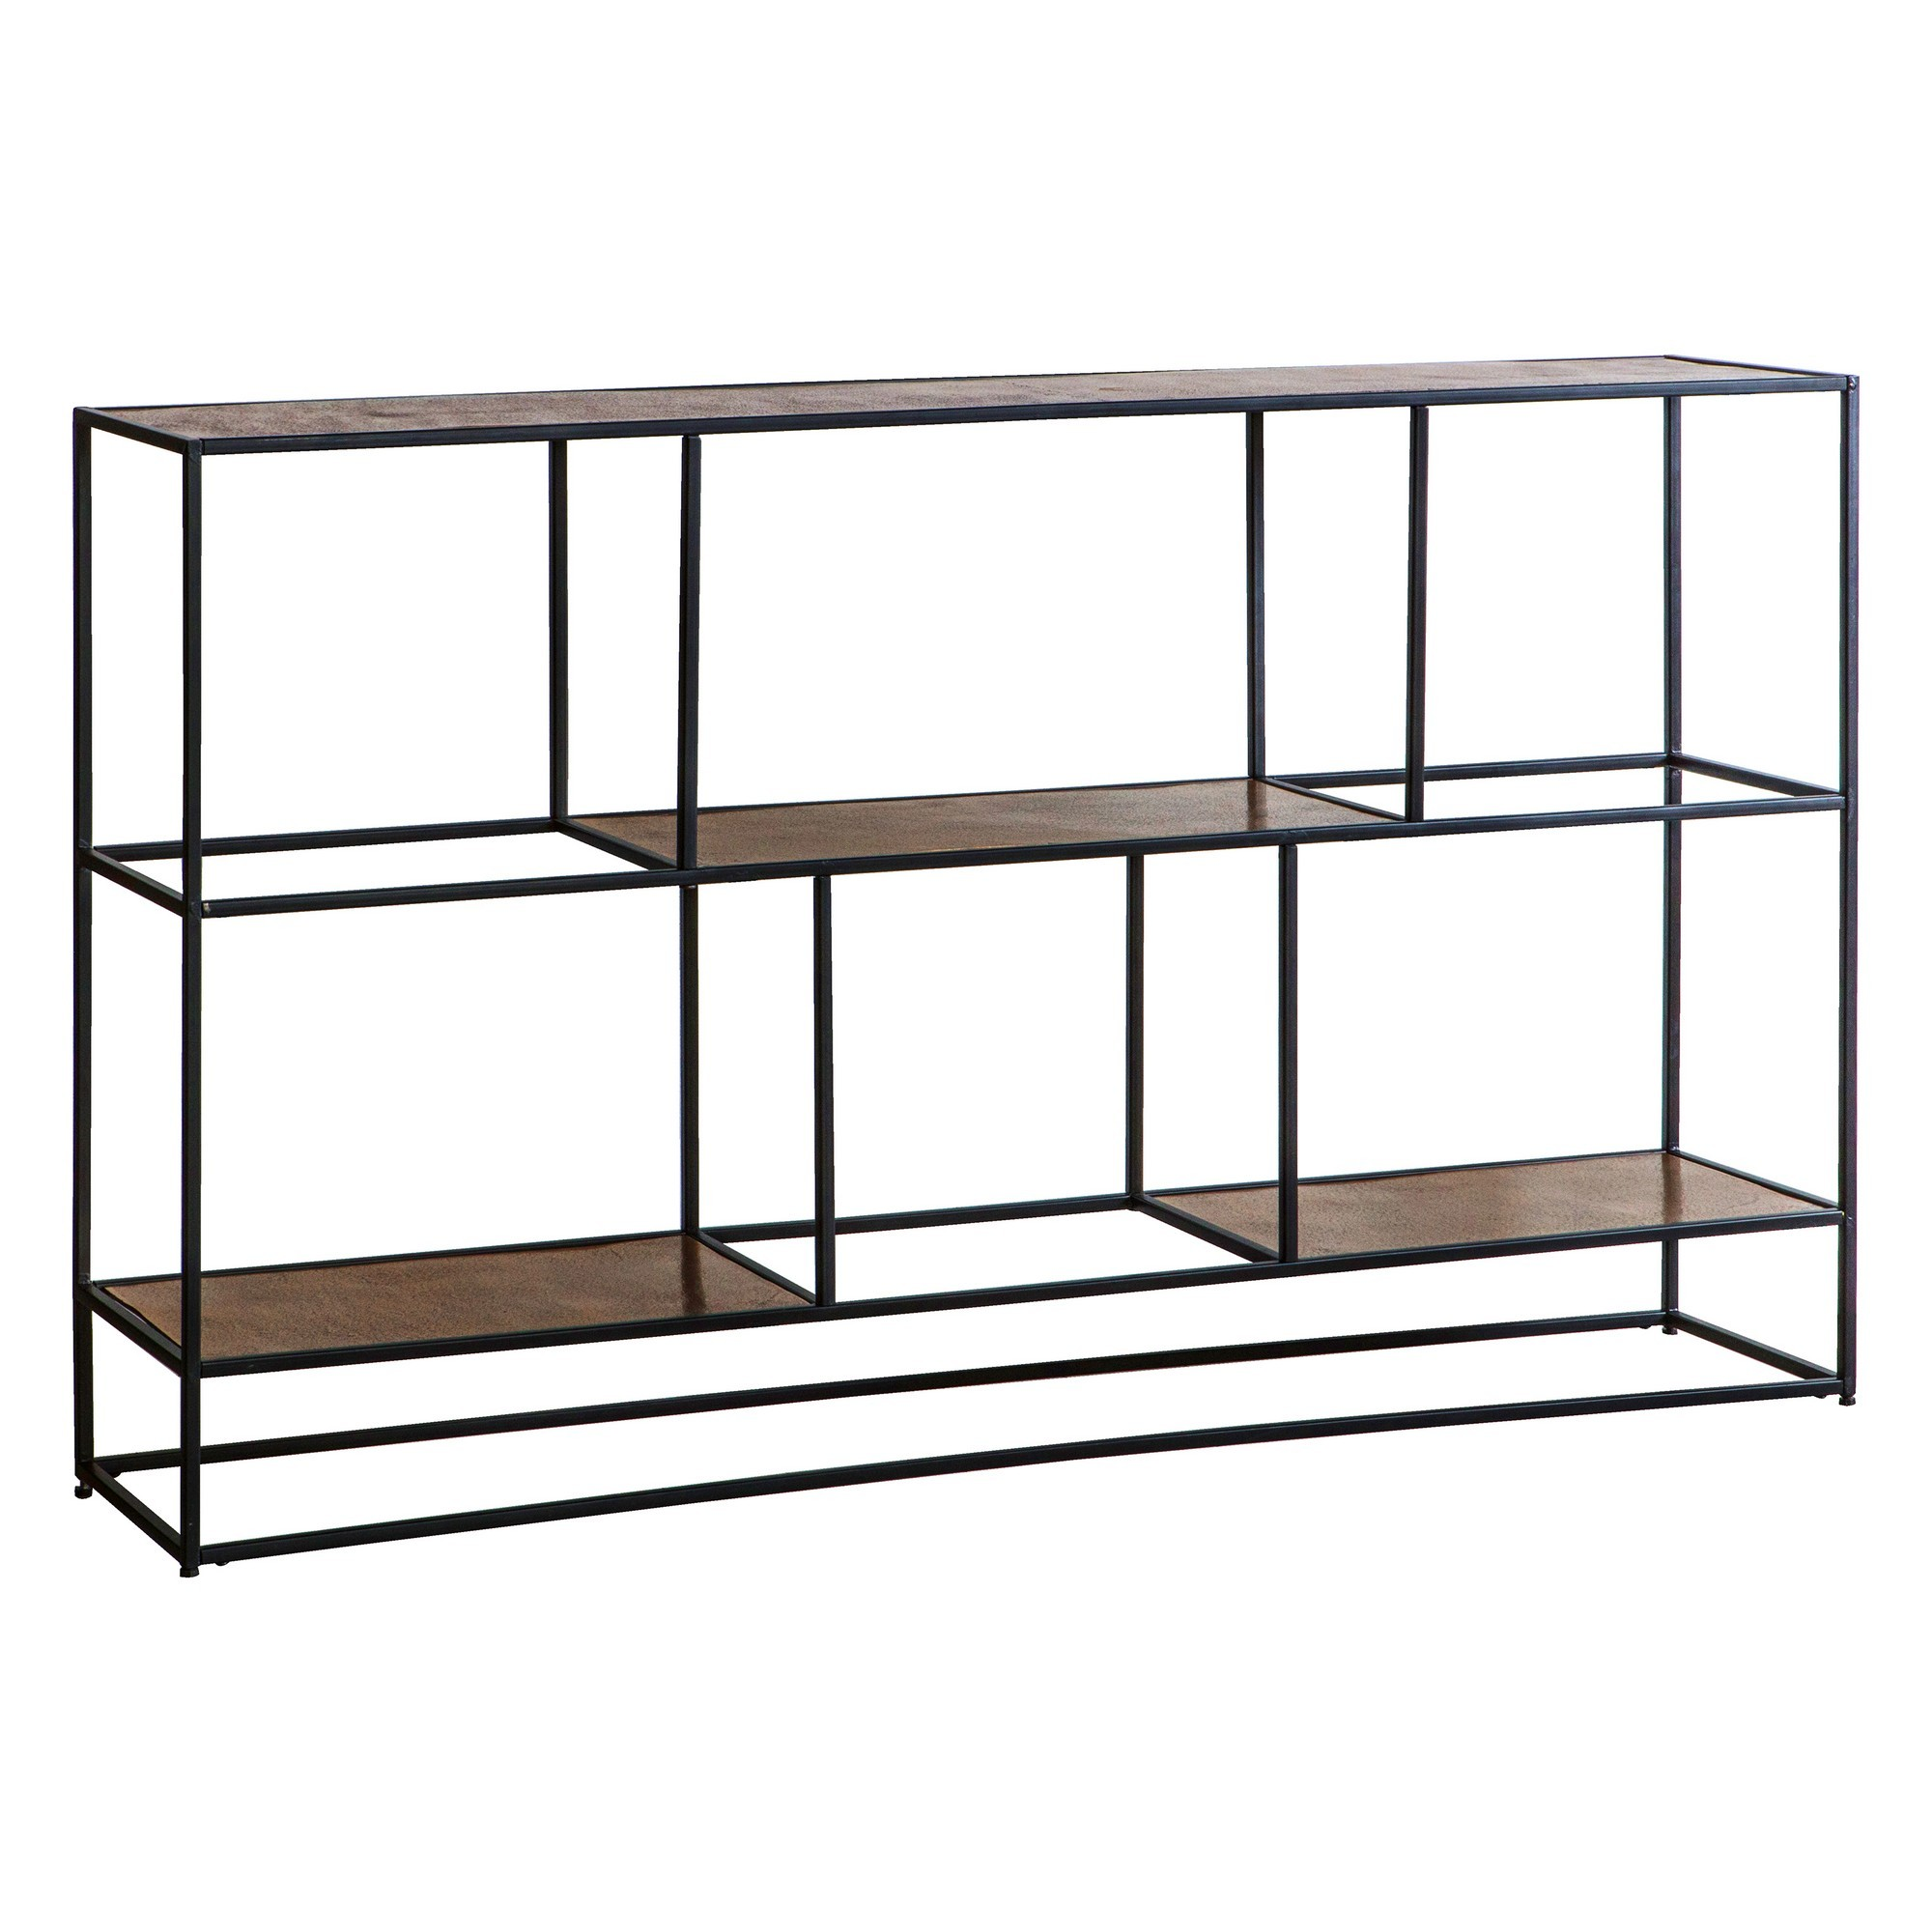 Harison Metal Sideboard Shelf, Antique Copper